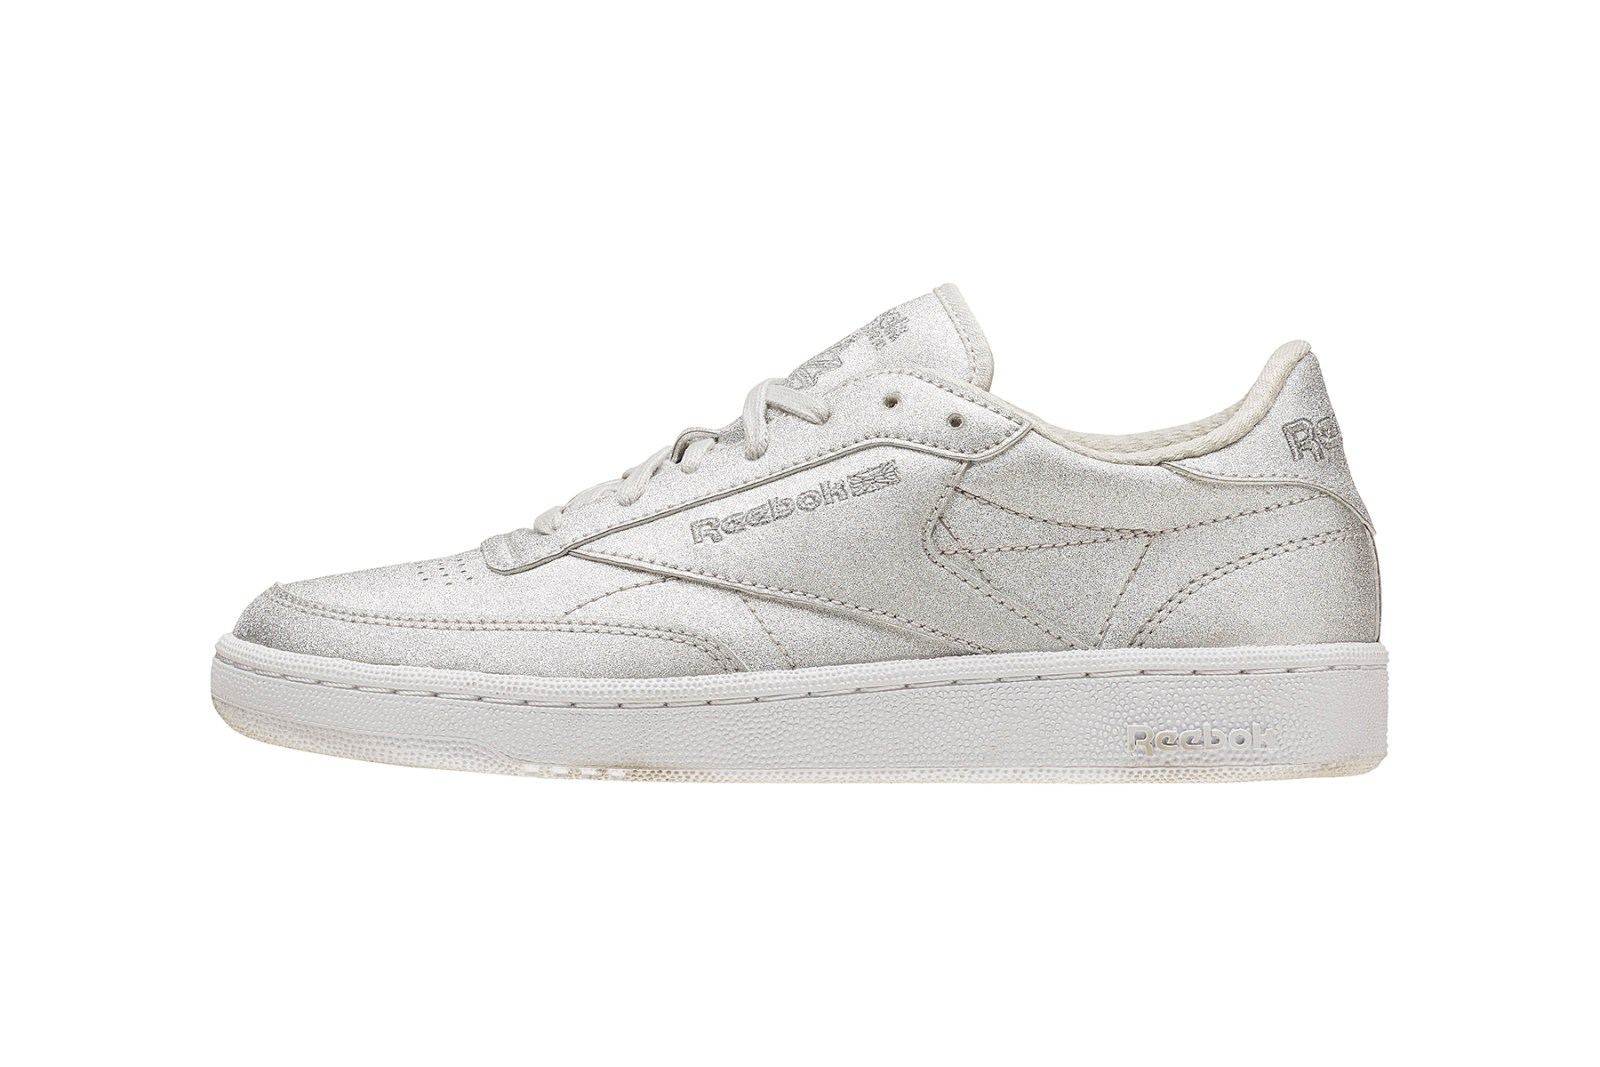 gigi-hadid-reebok-club-c-diamond-pack-12